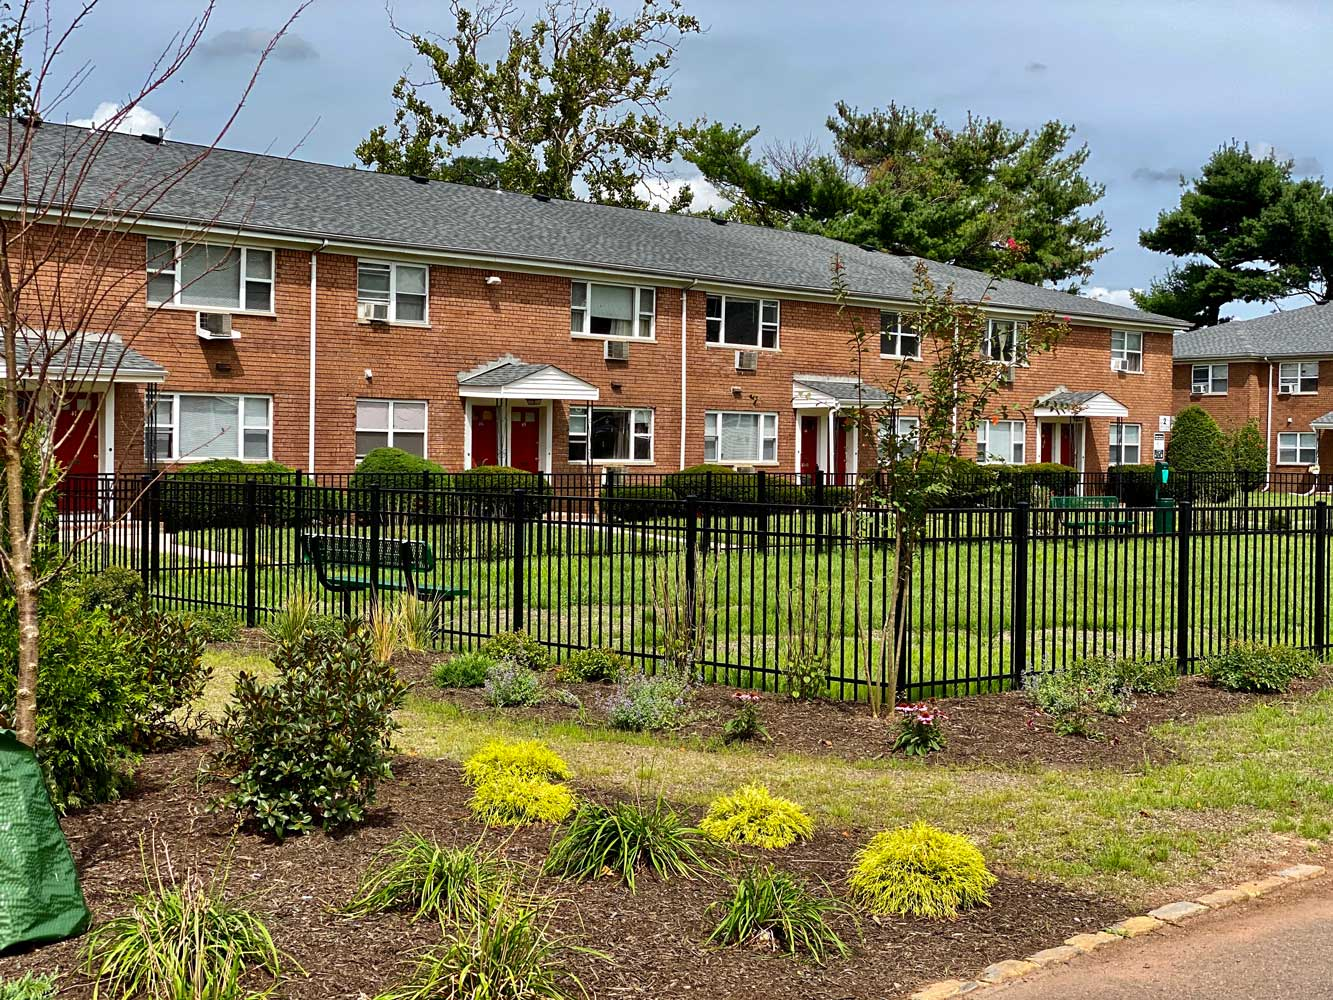 Lush Landscaping at Hampton Gardens Apartments in Middlesex, New Jersey